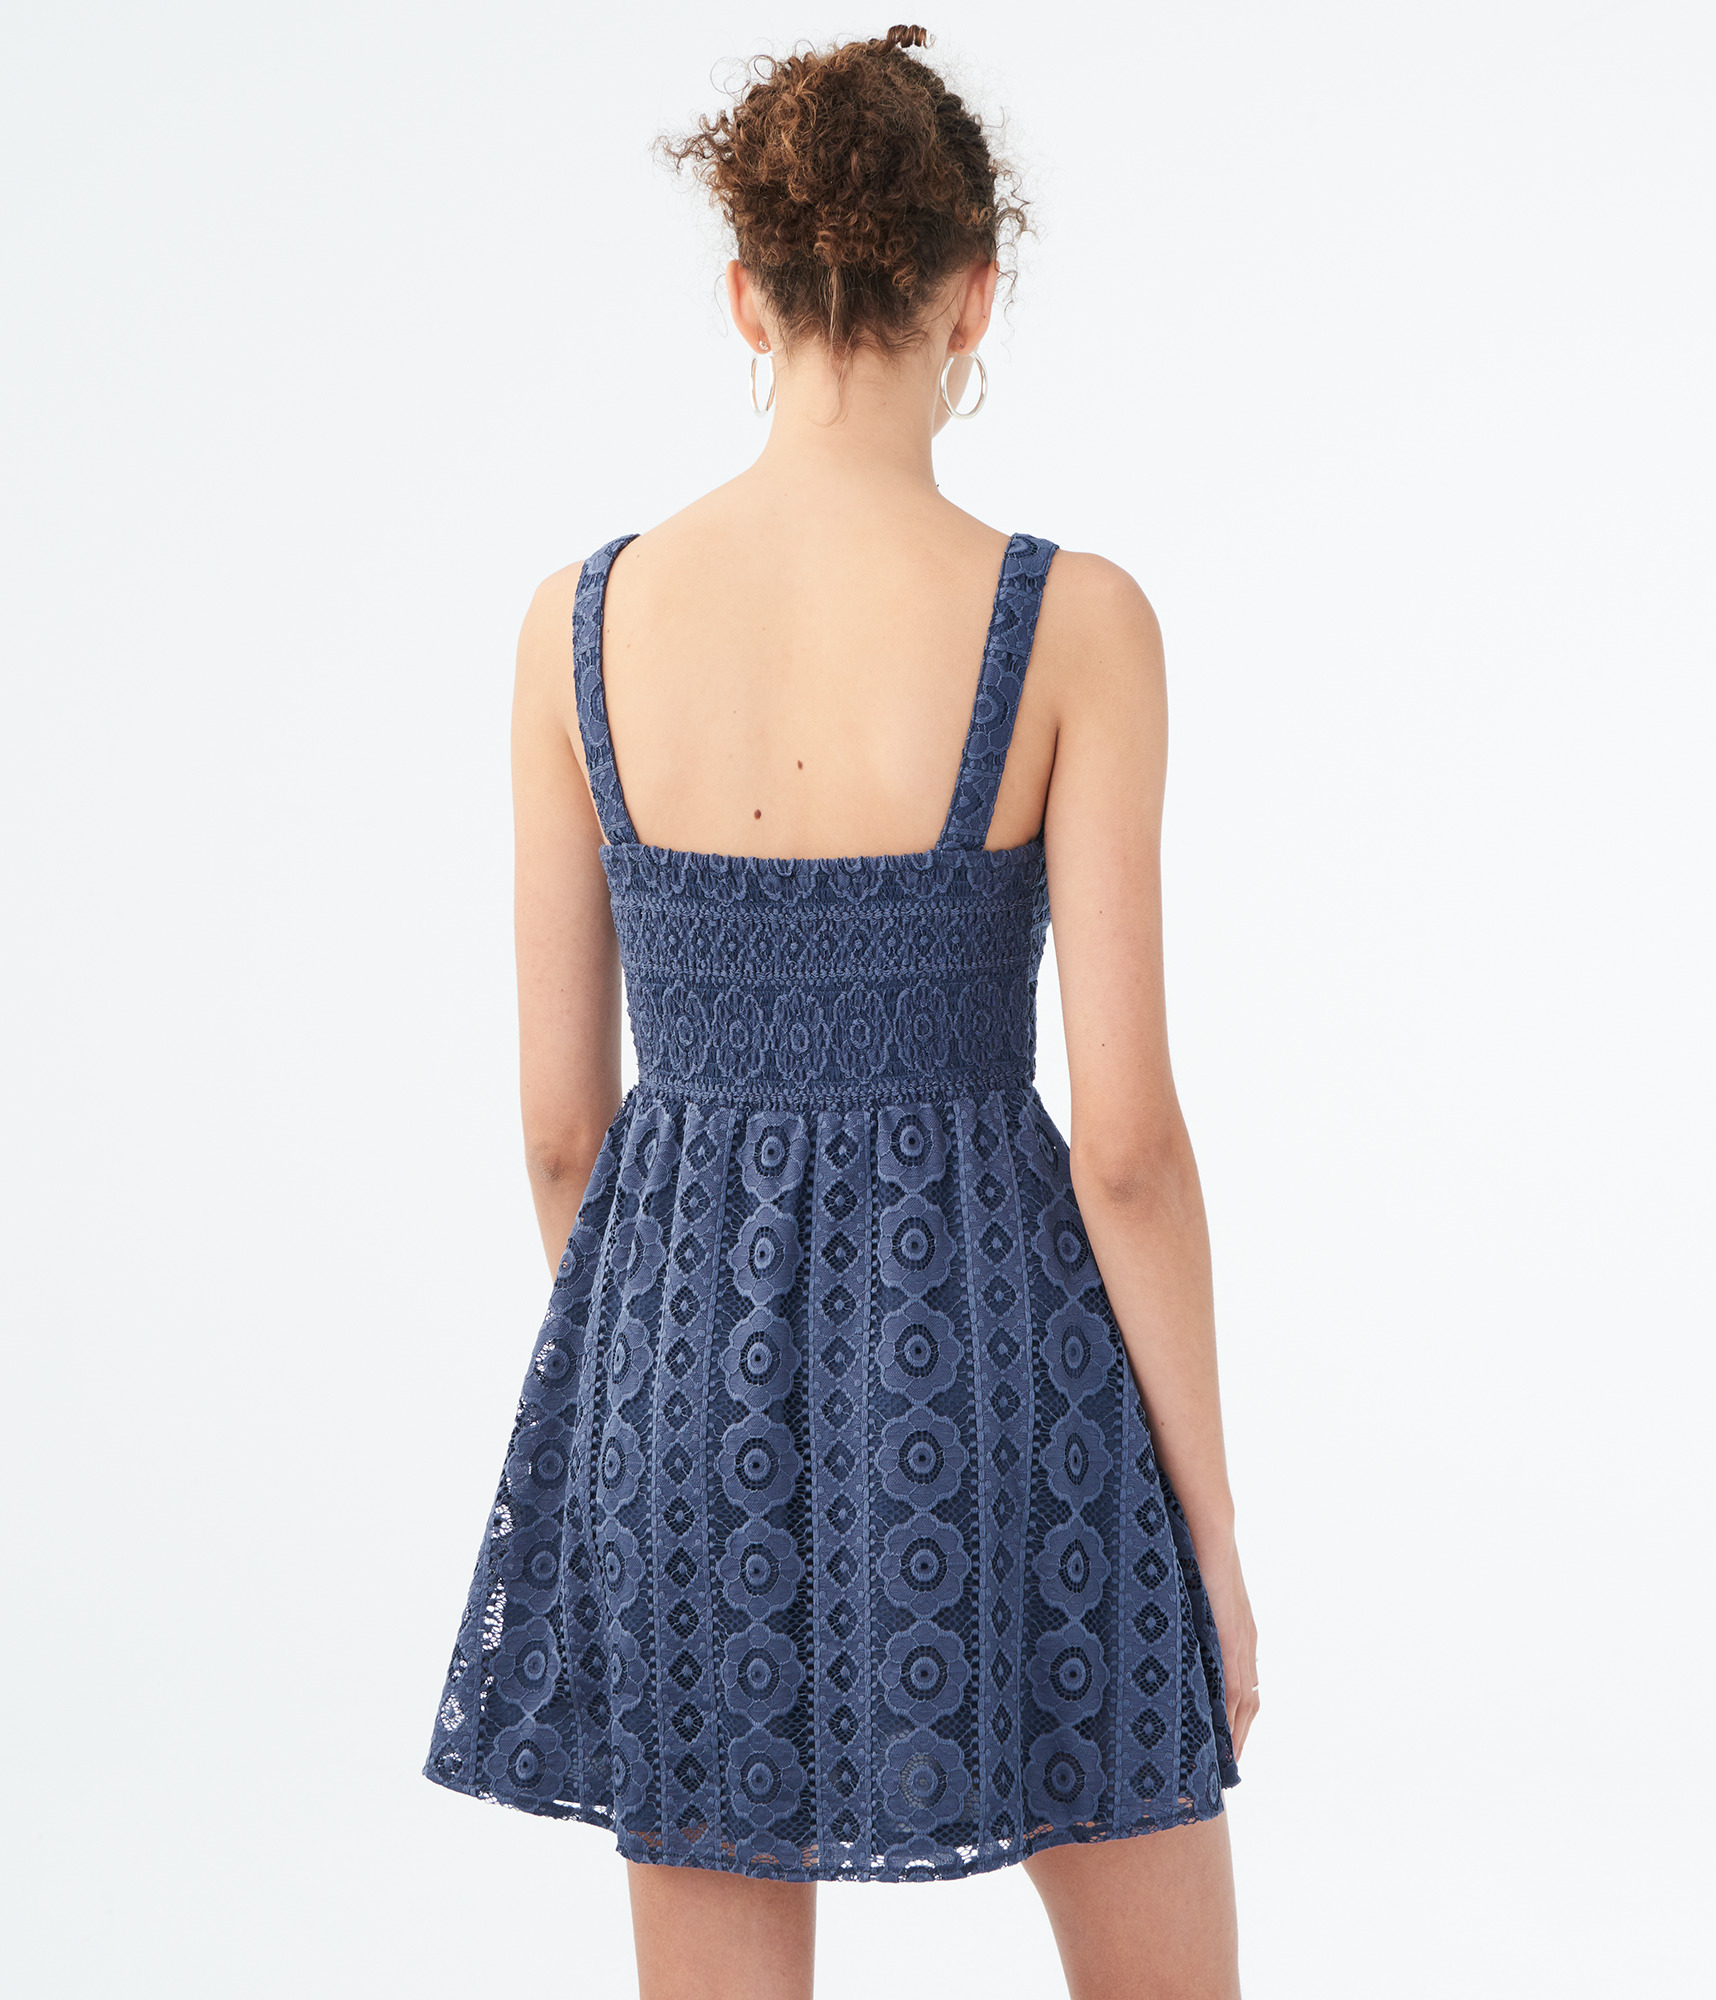 aeropostale-womens-solid-square-neck-lace-corset-fit-amp-flare-dress thumbnail 14